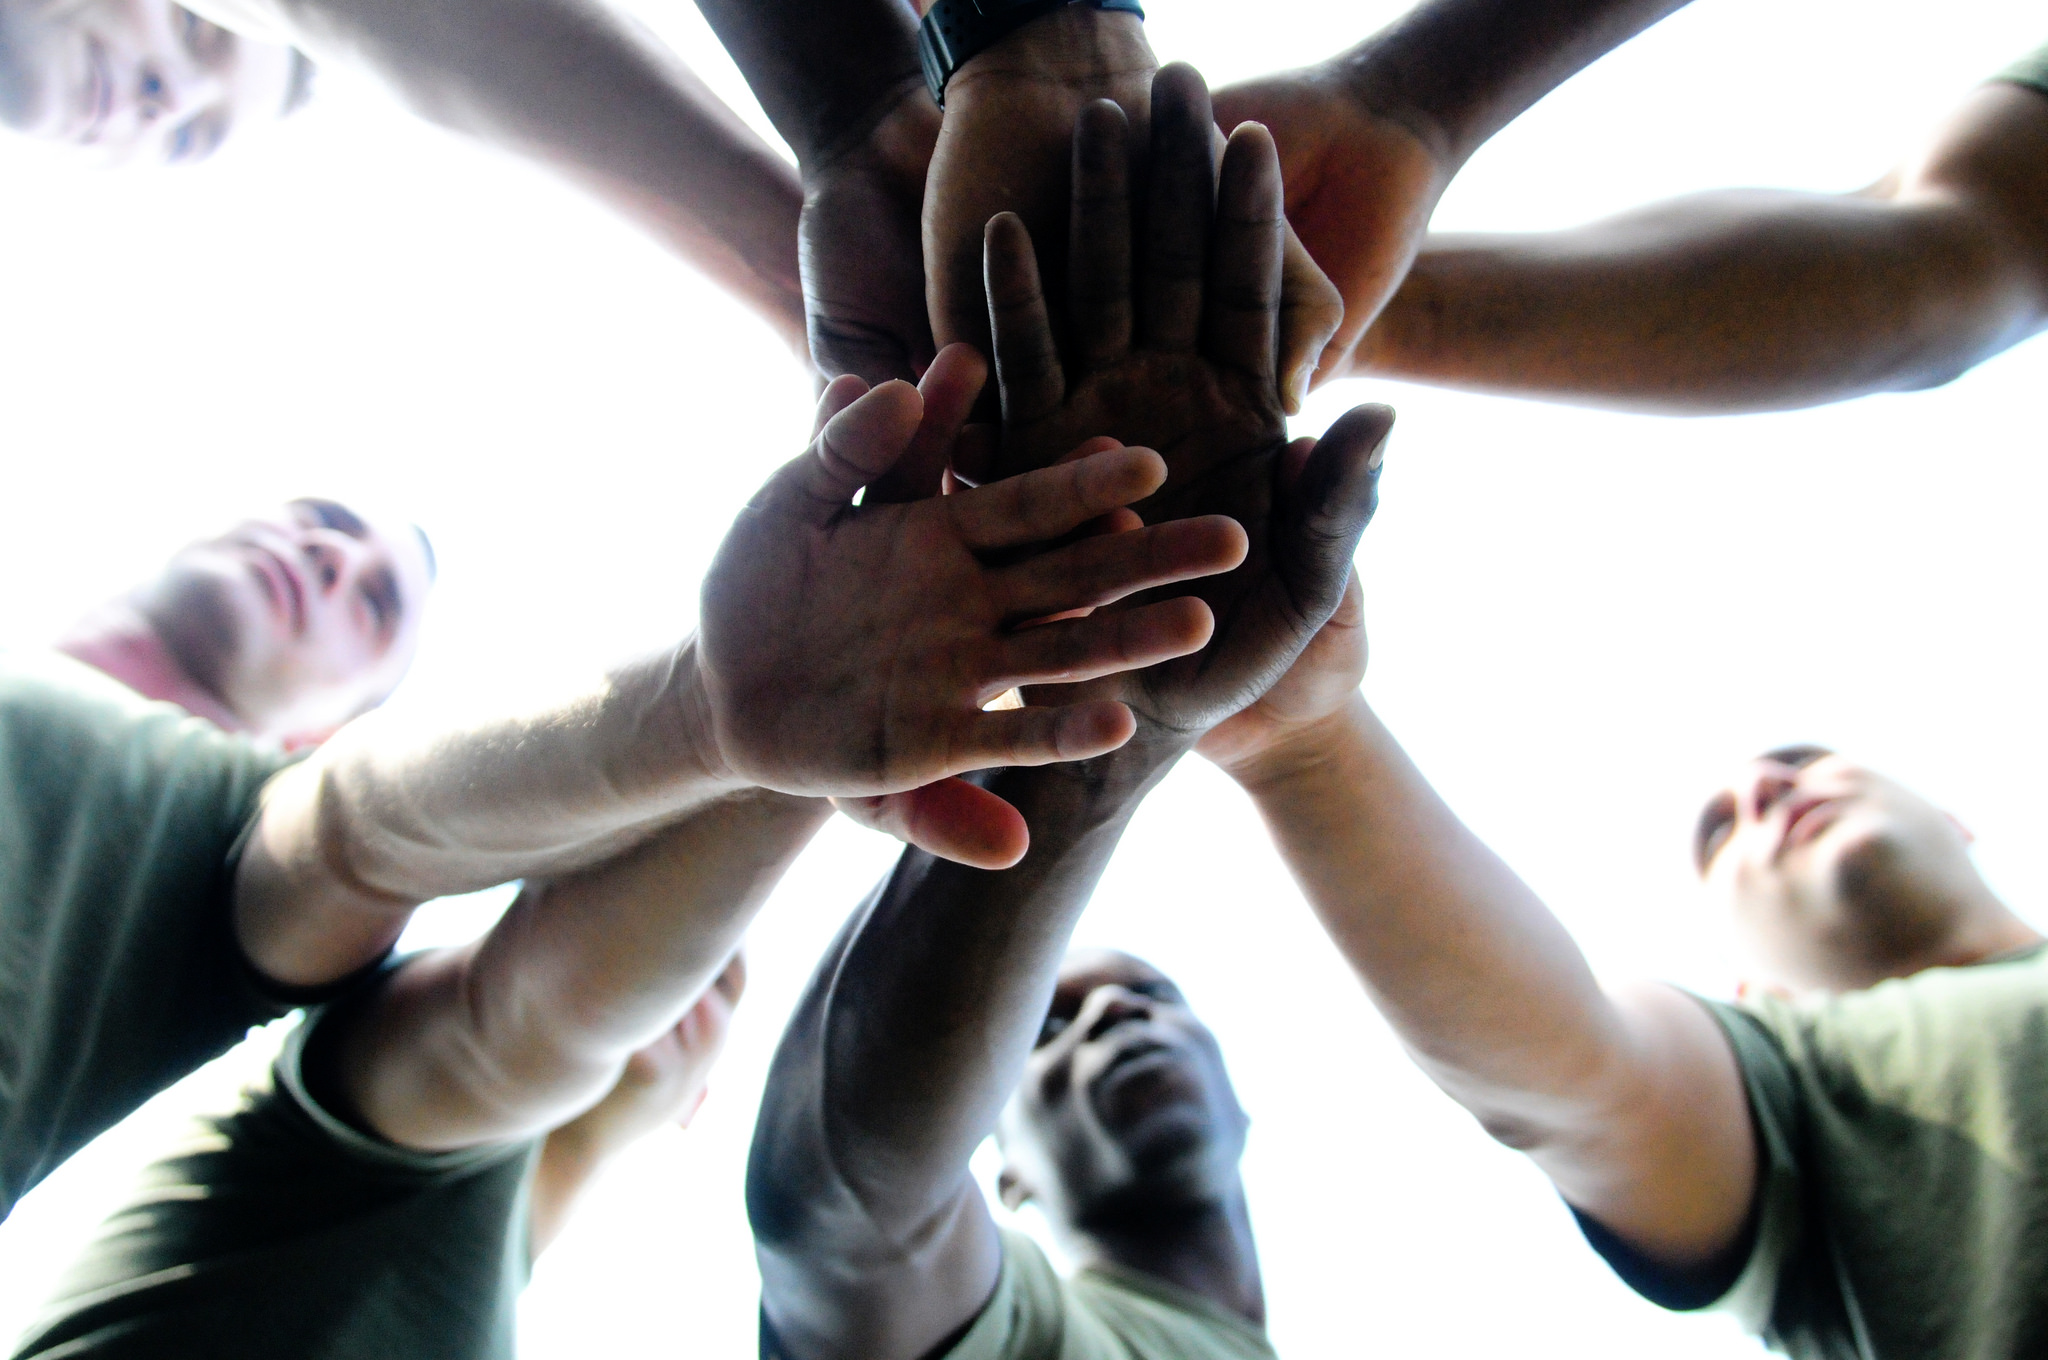 team huddle where each person places a hand in the center atop another member's hand.